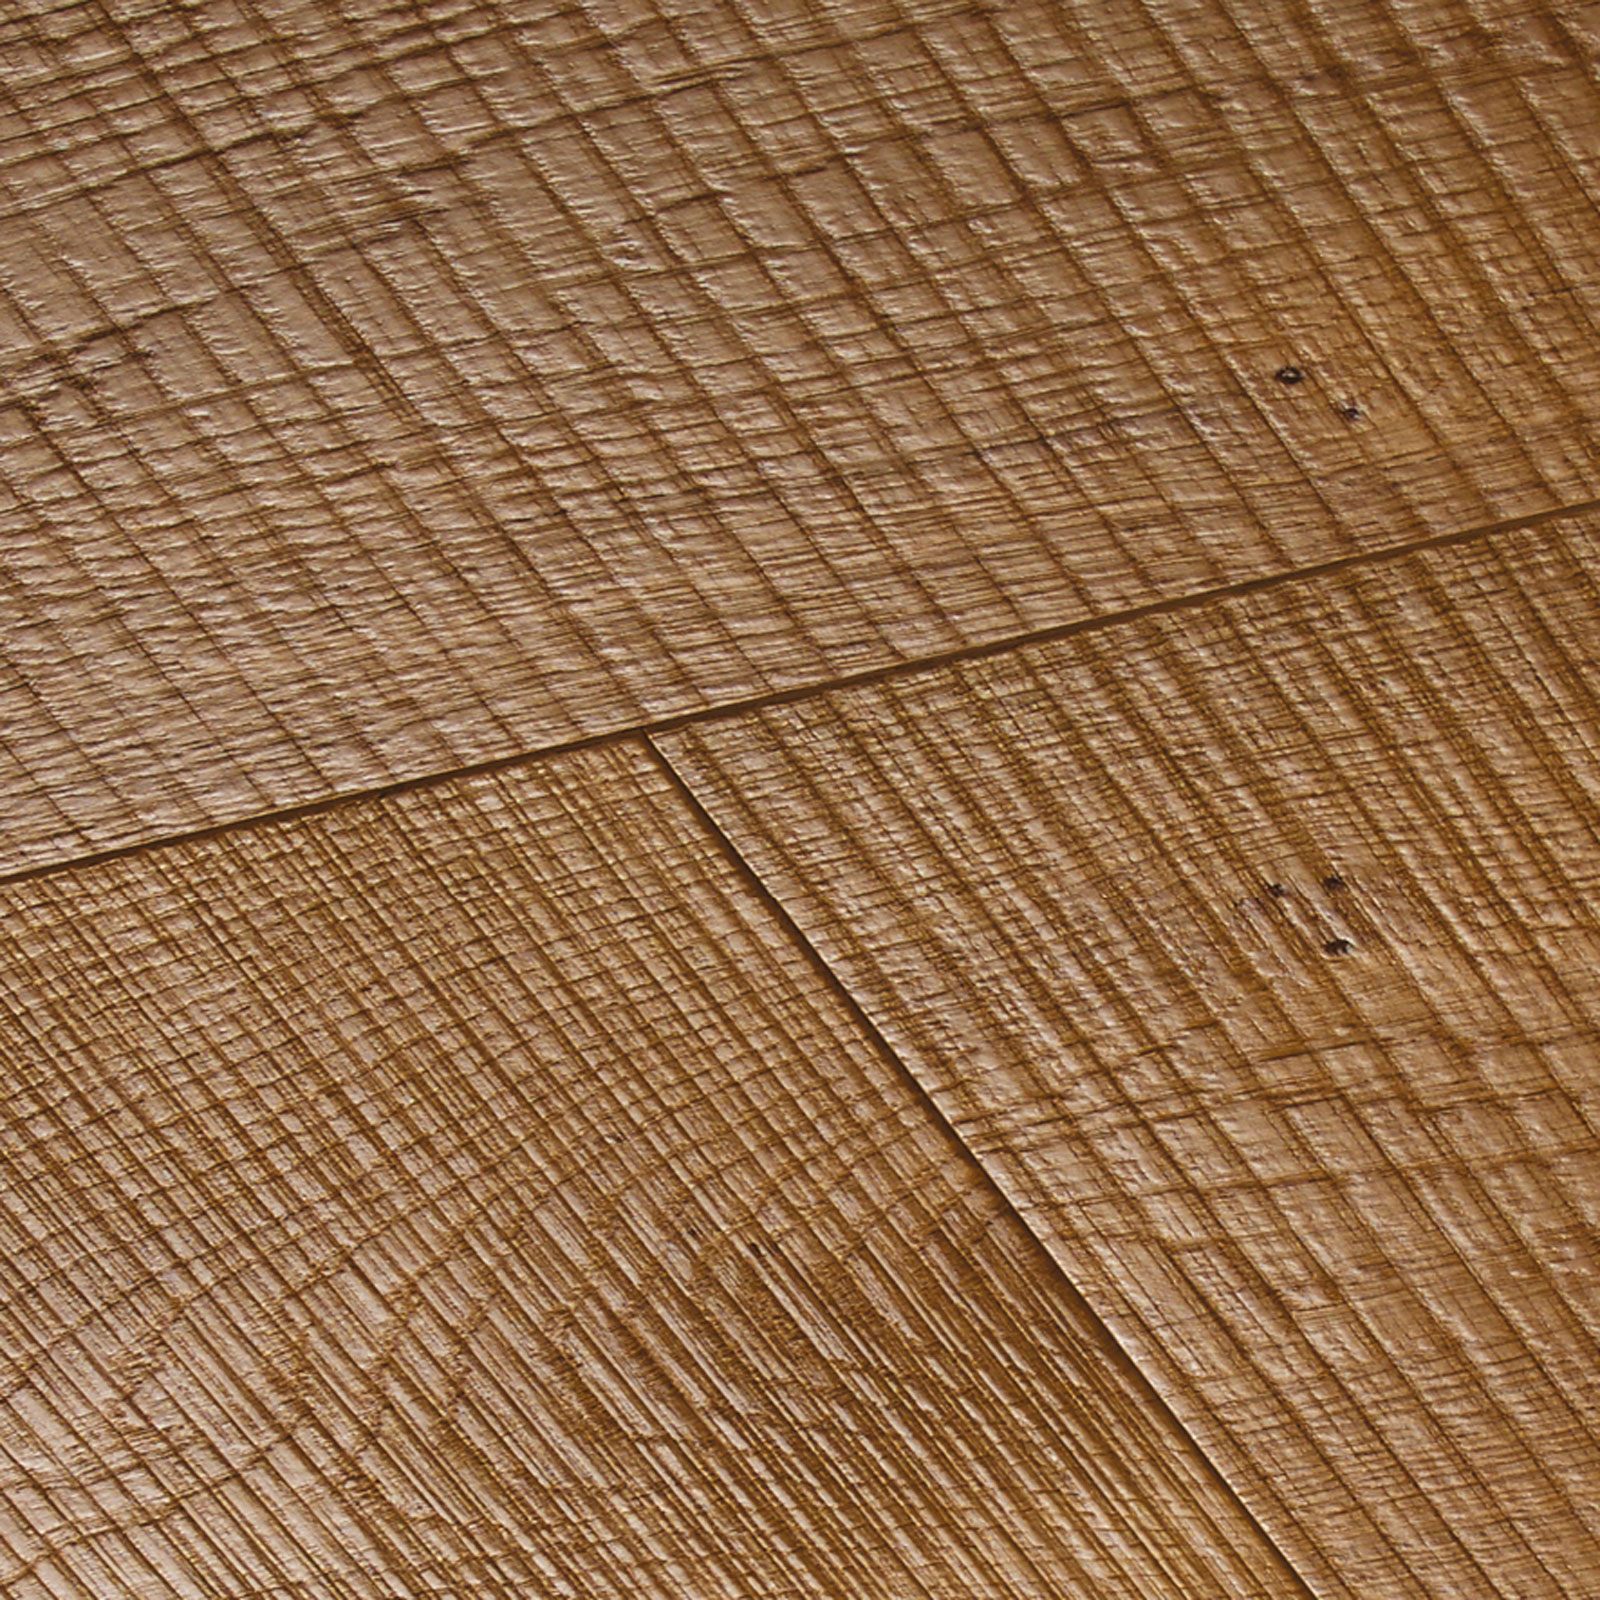 Chepstow sawn natural oak flooring woodpecker flooring for Natural oak wood flooring